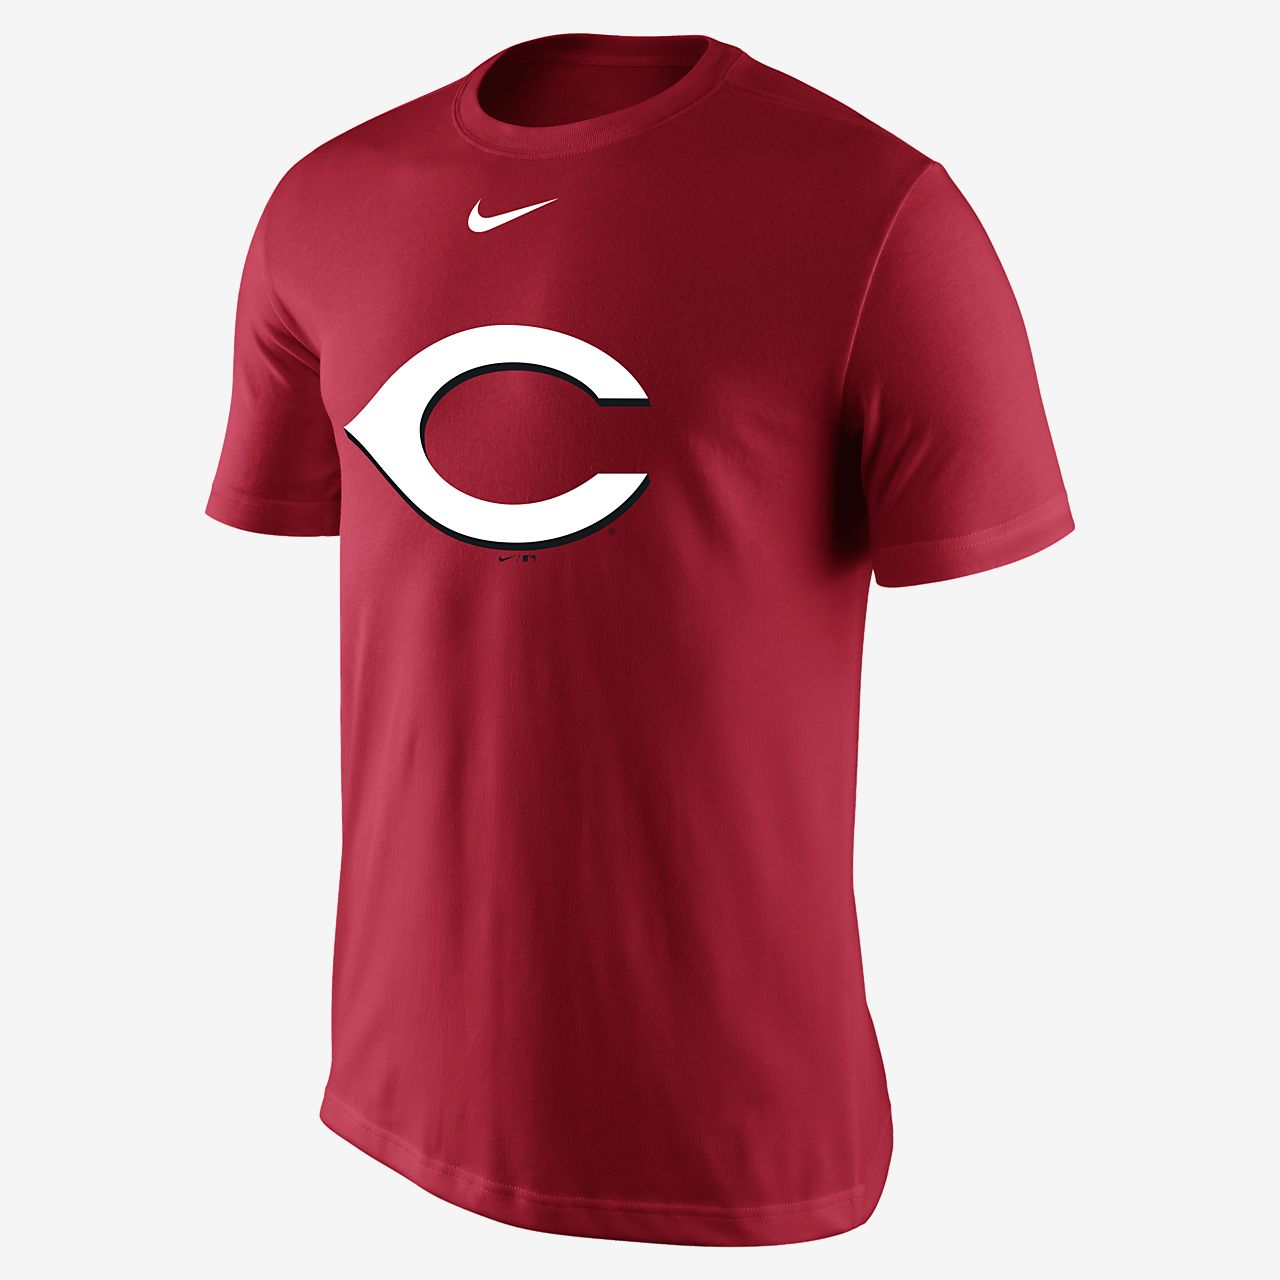 Nike Marled (MLB Reds) Men's T-Shirts Red